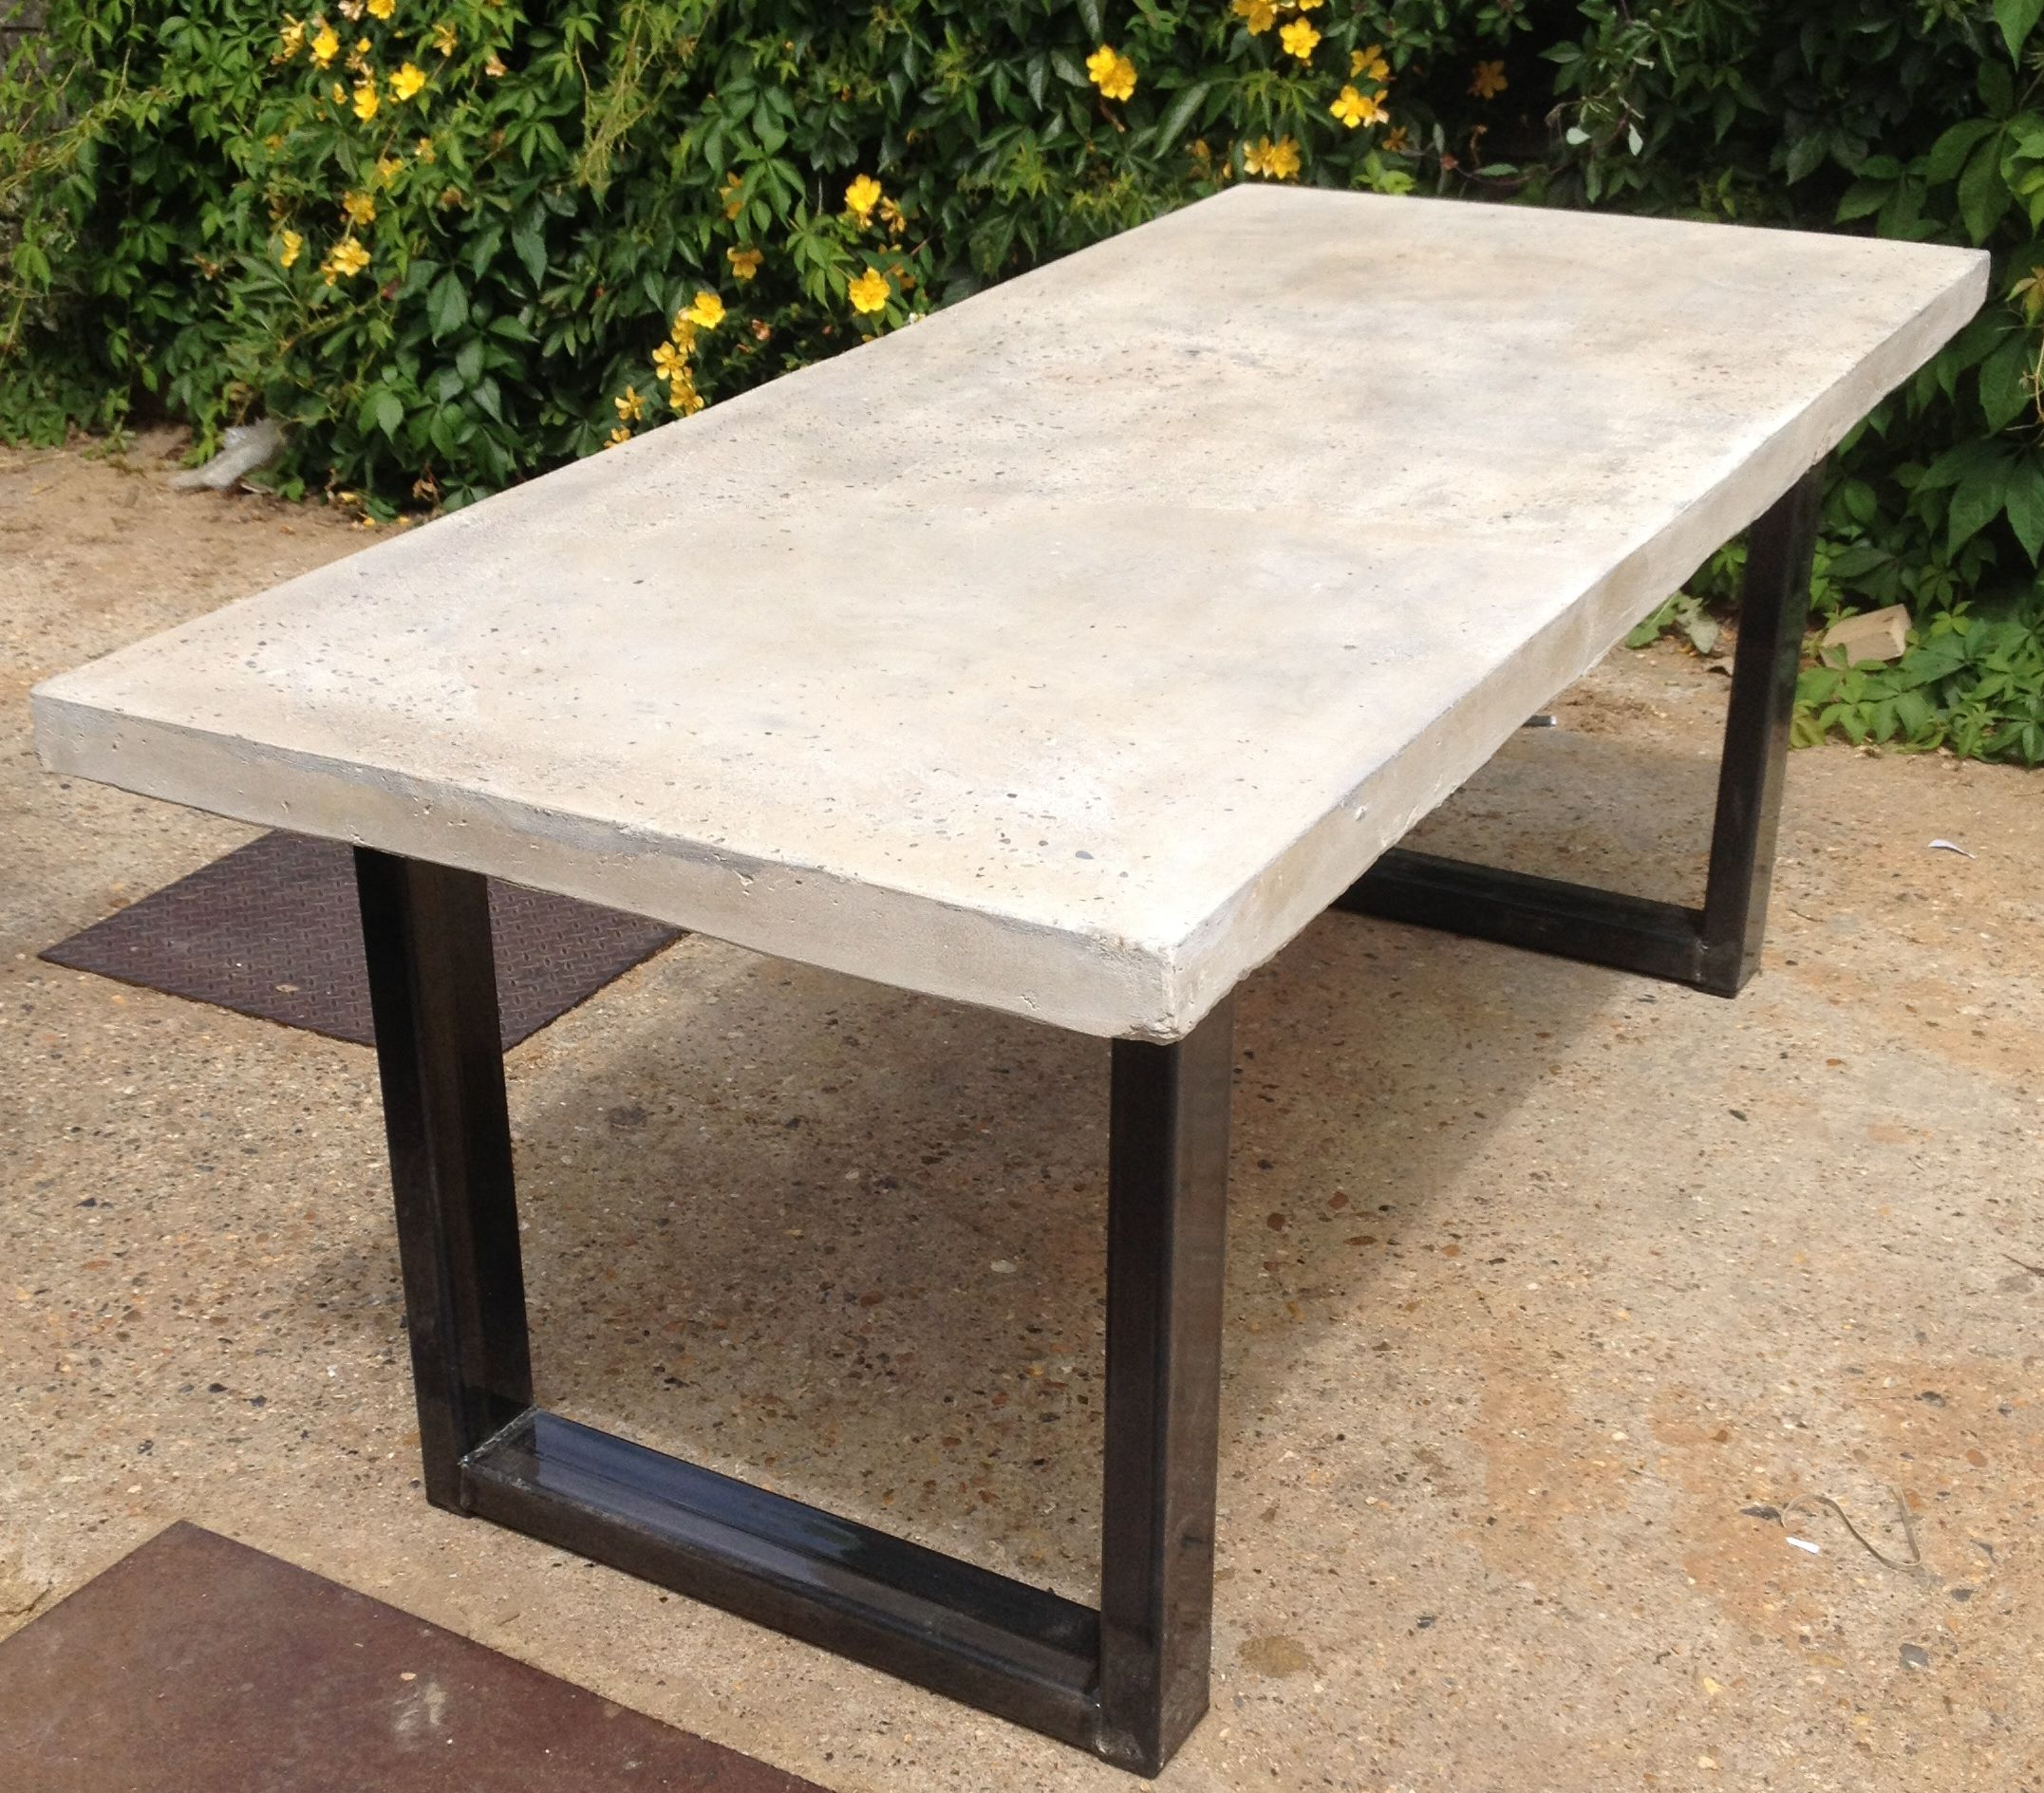 vintage industrial furniture tables design. Polished Chunky Concrete Dining Table With Industrial Metal Frame Modern Contermporary Style Vintage Furniture Tables Design W